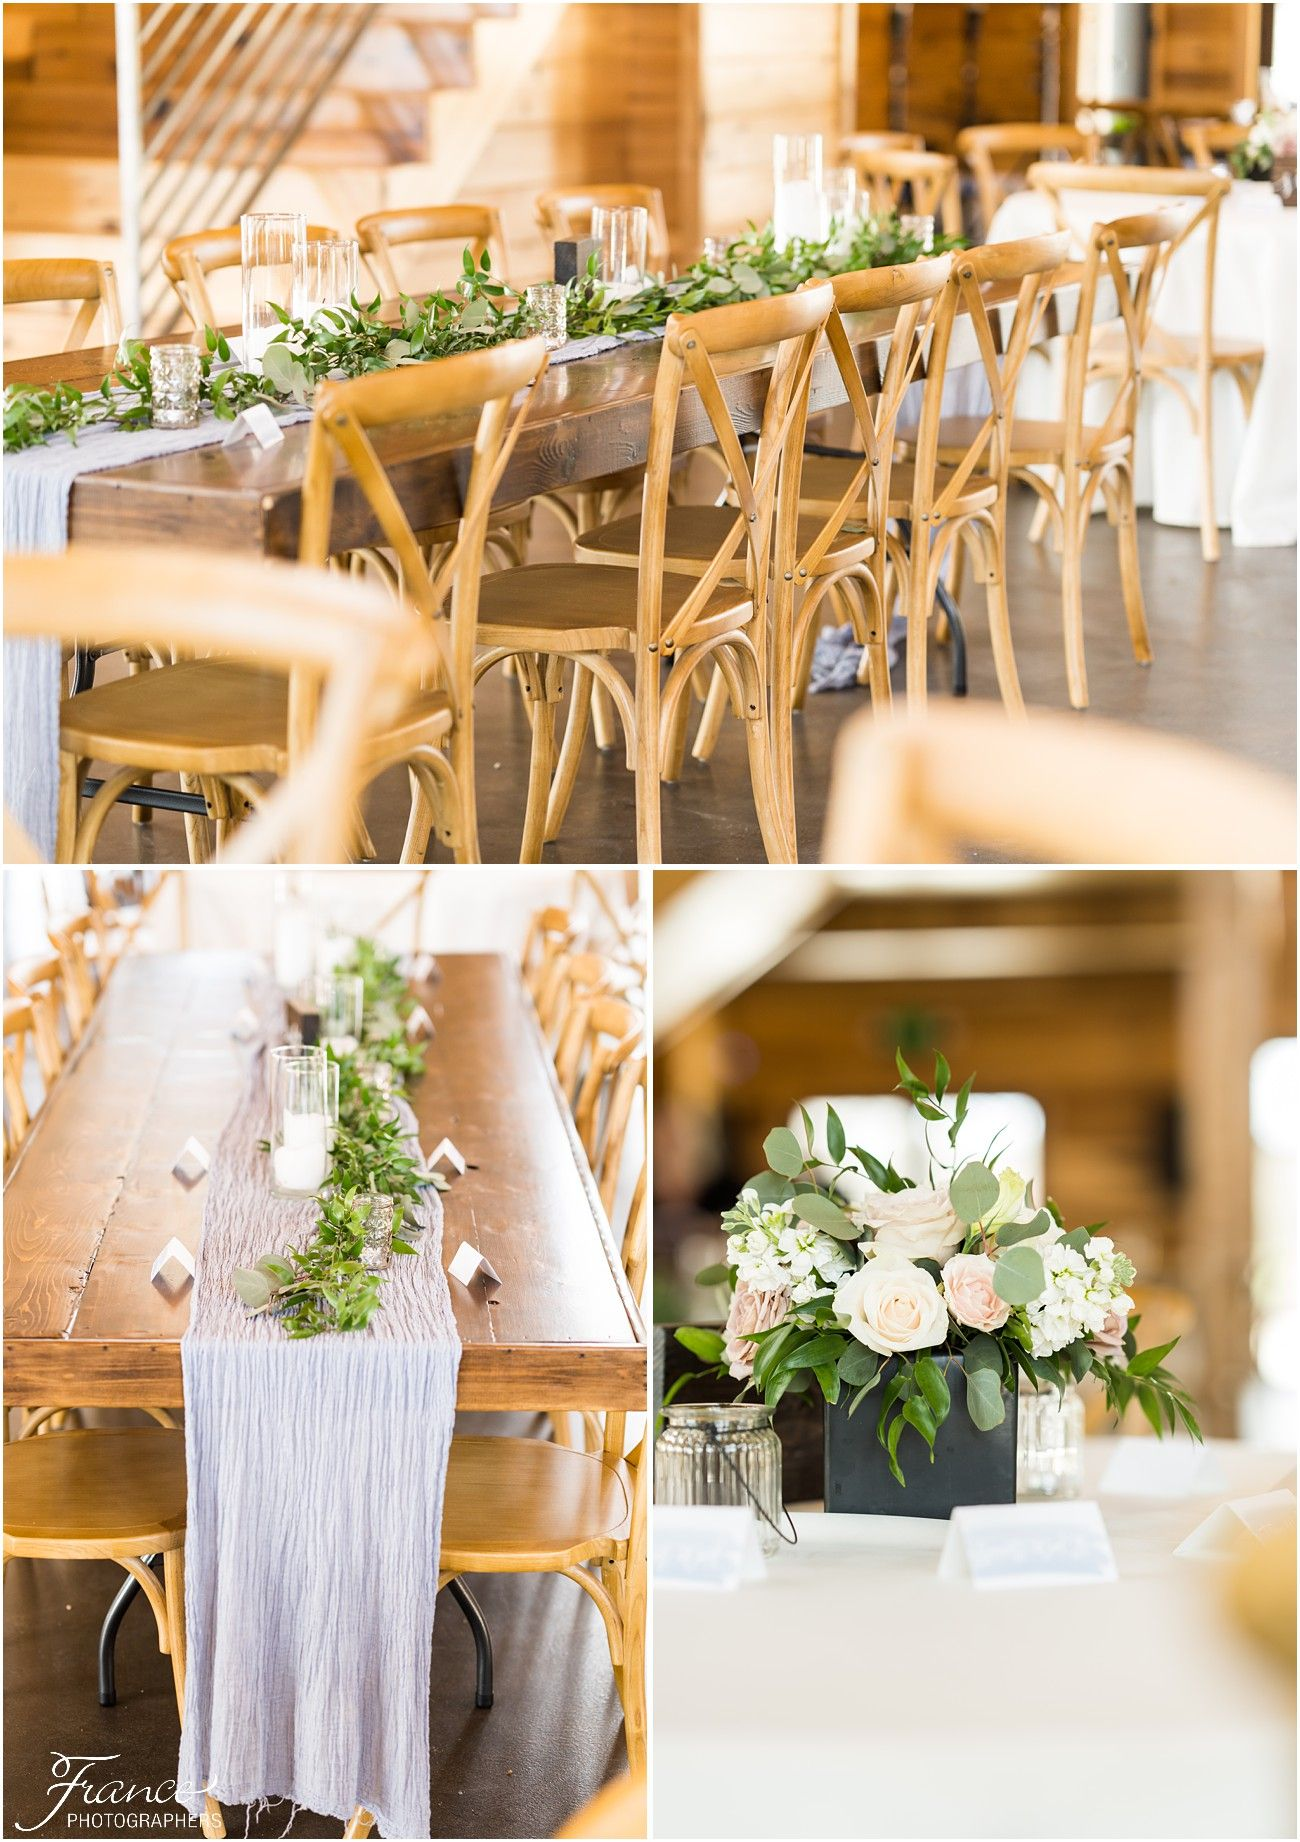 Rustic Wedding At Barn At Swallows Eve In Texas With